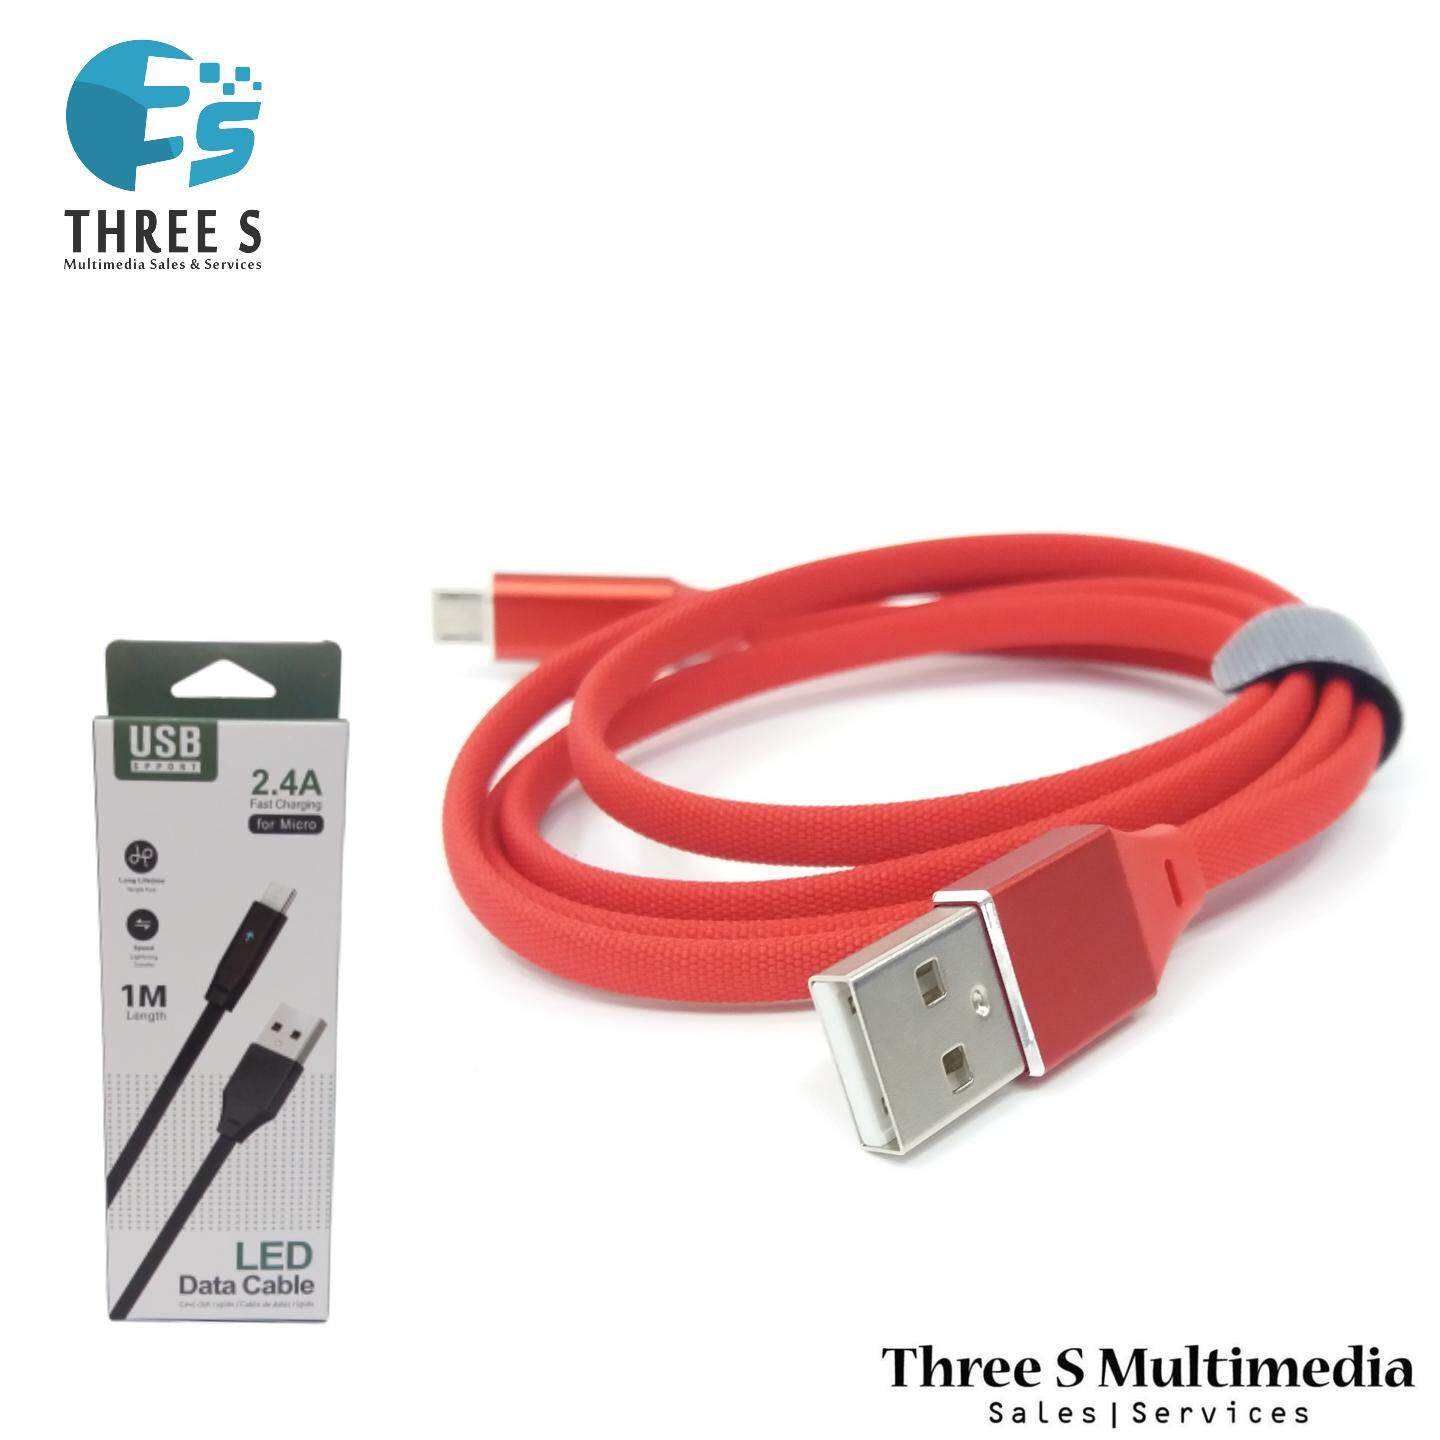 MICRO USB CABLE 1M FAST CHARGER AND DATA TRANSFER